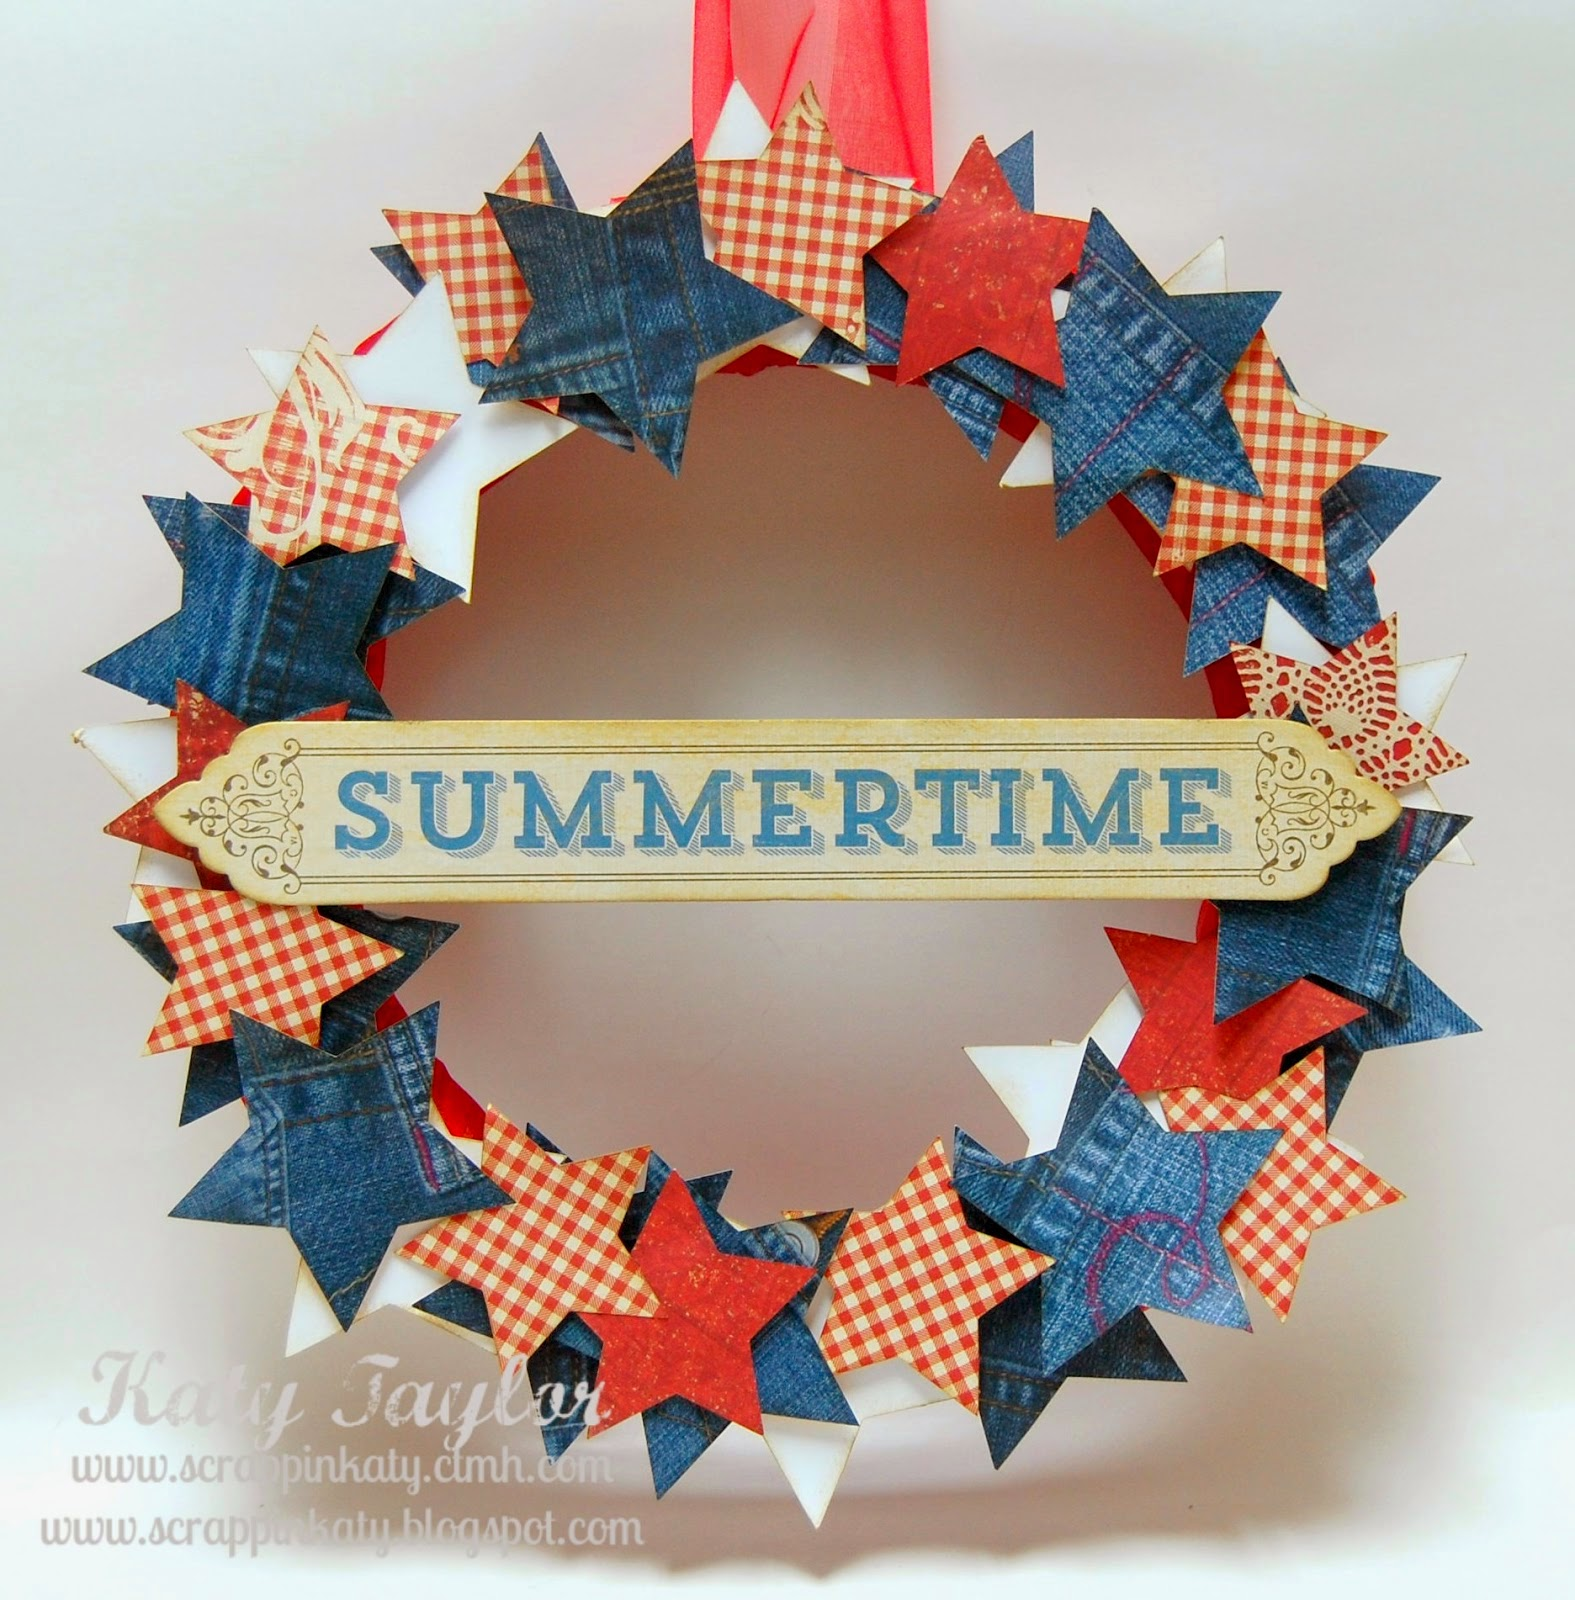 Red White & Blue Summertime Star Wreath